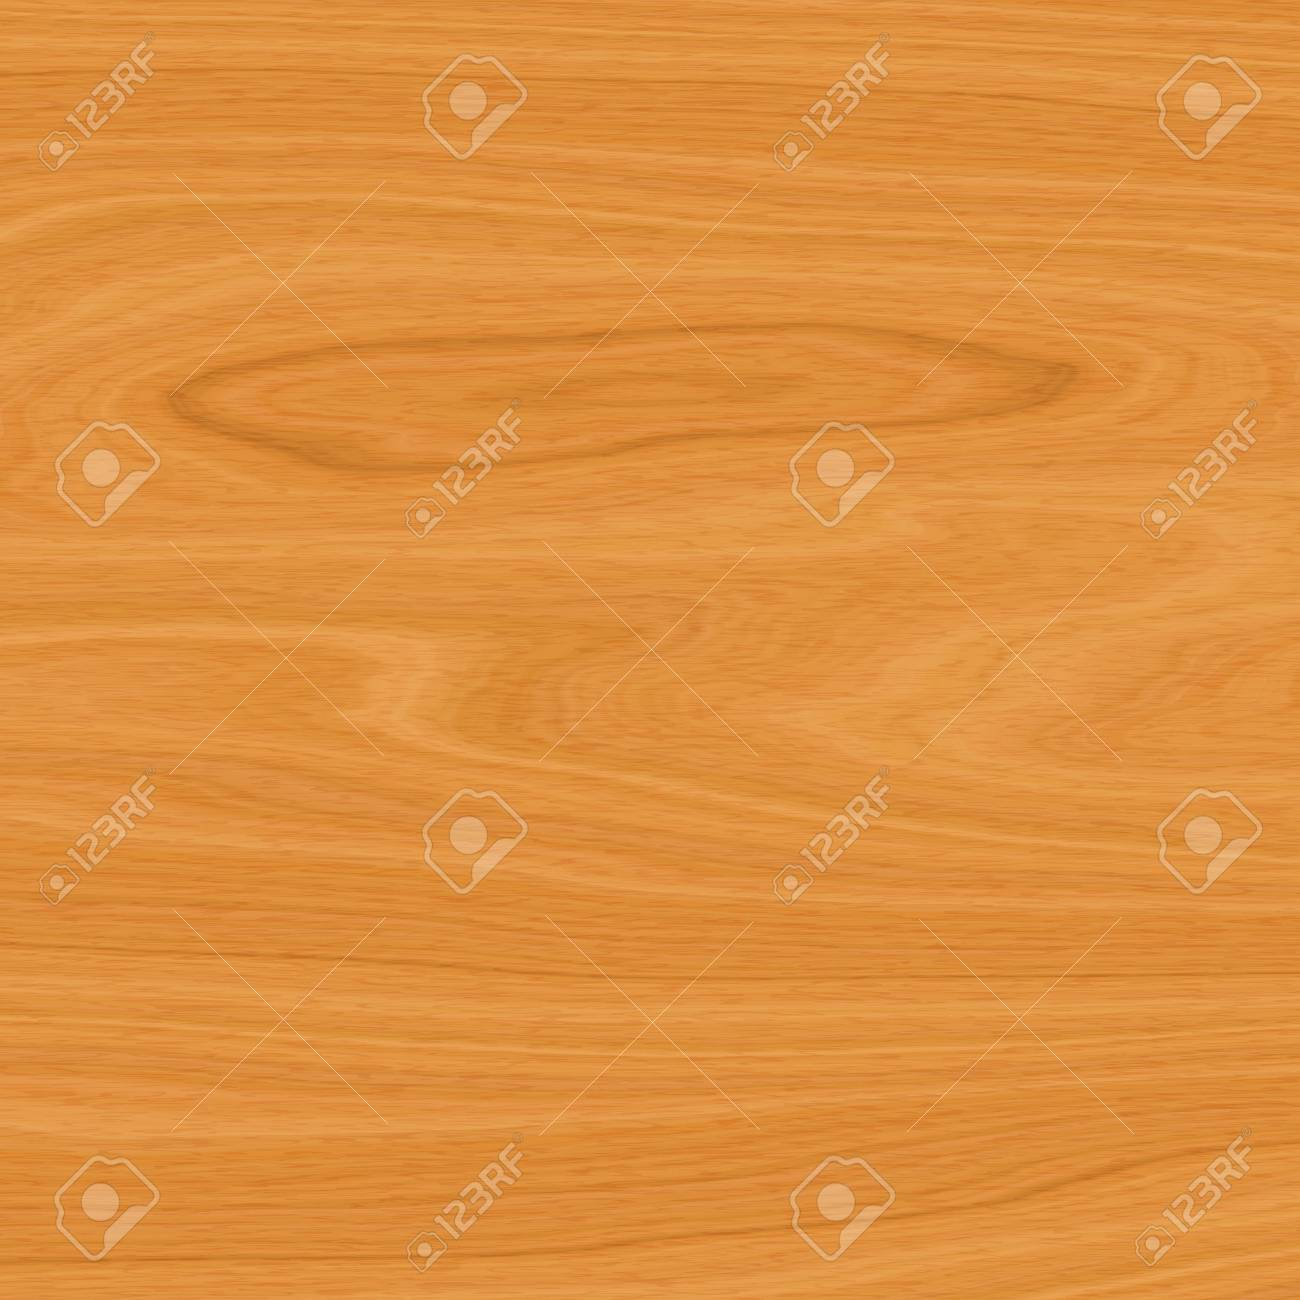 wooden background Stock Photo - 11253163